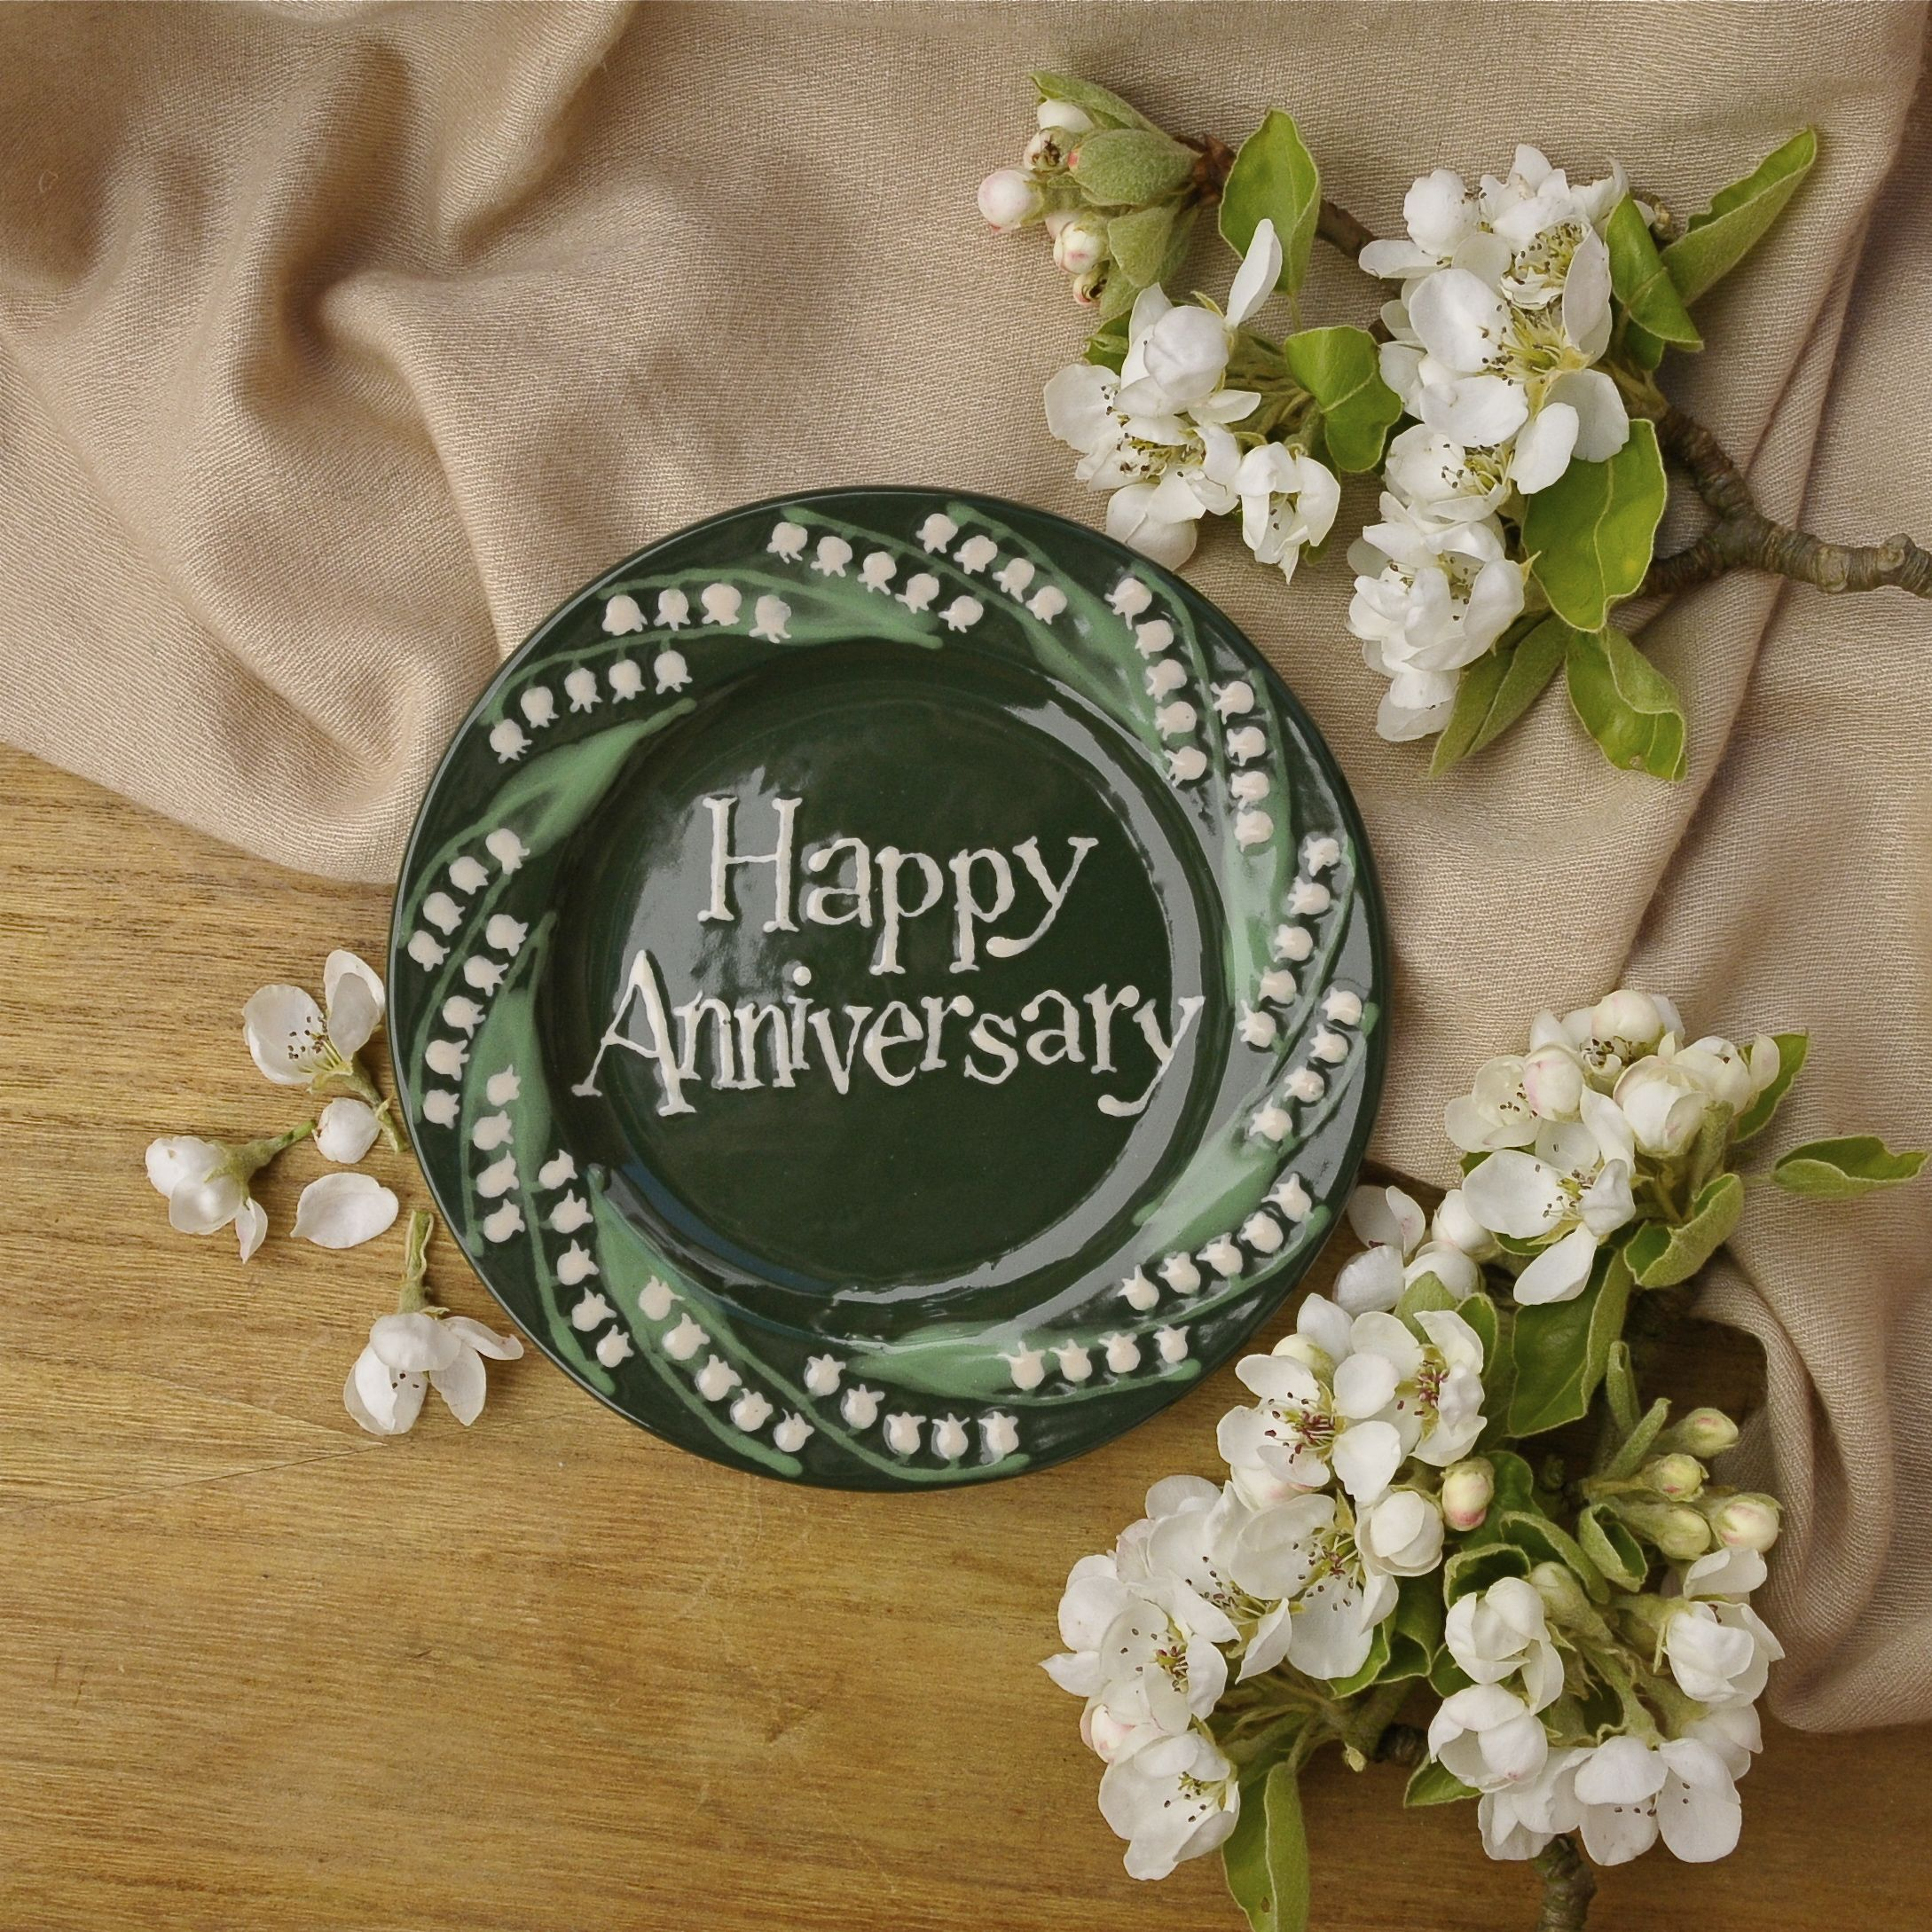 Lily of the Valley Little plate #Anniversarygift #Weddinggift #personalisedgift